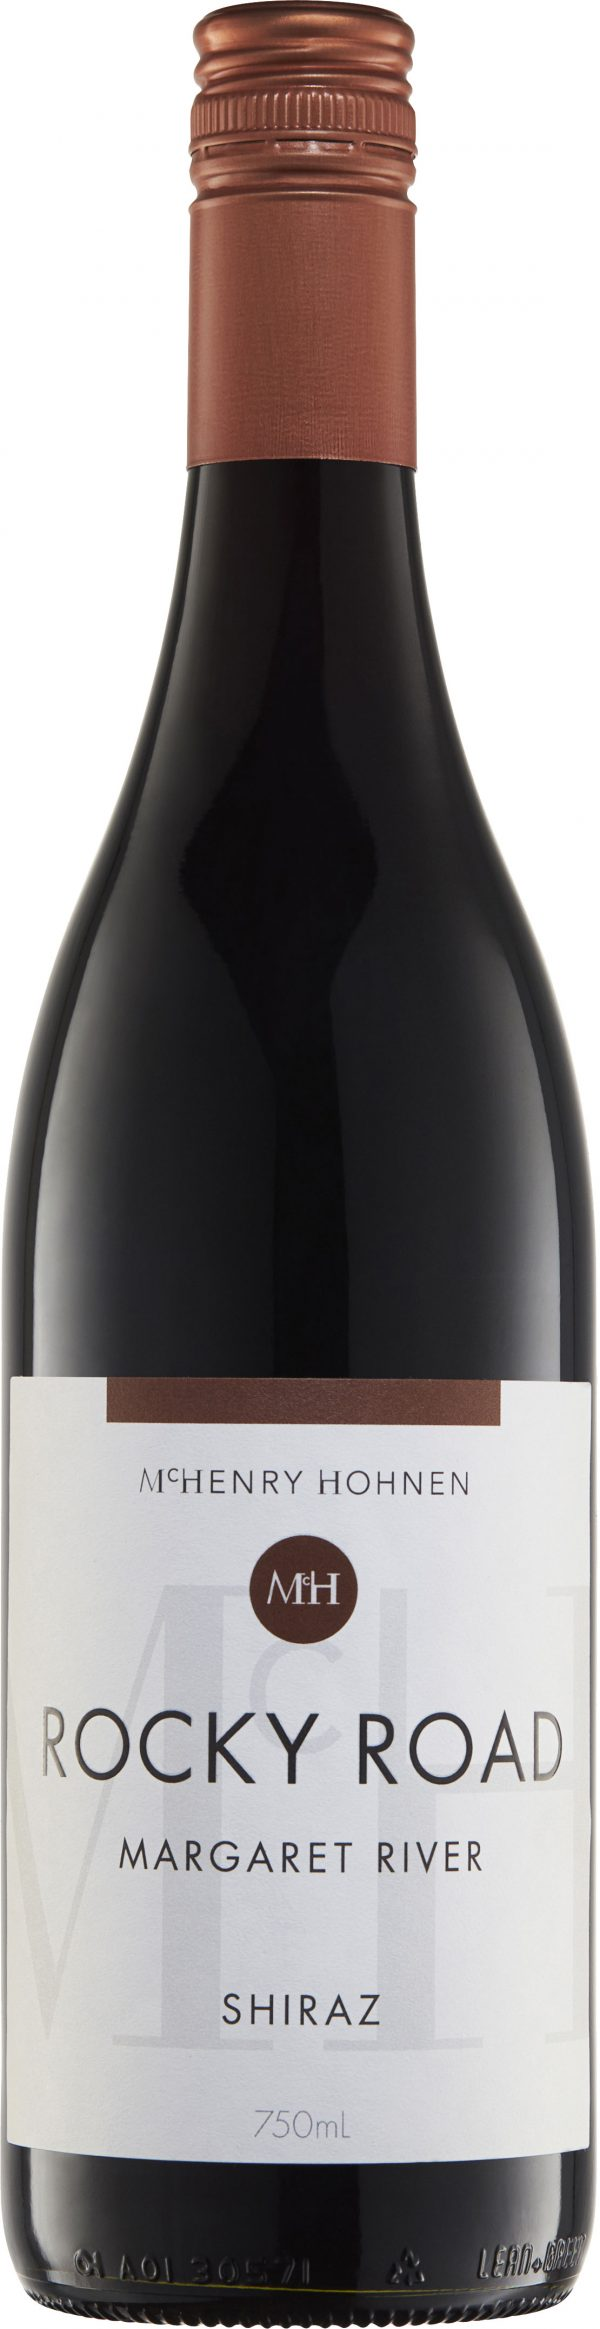 McHenry Hohnen - Rocky Road Shiraz 2014 6x 75cl Bottles